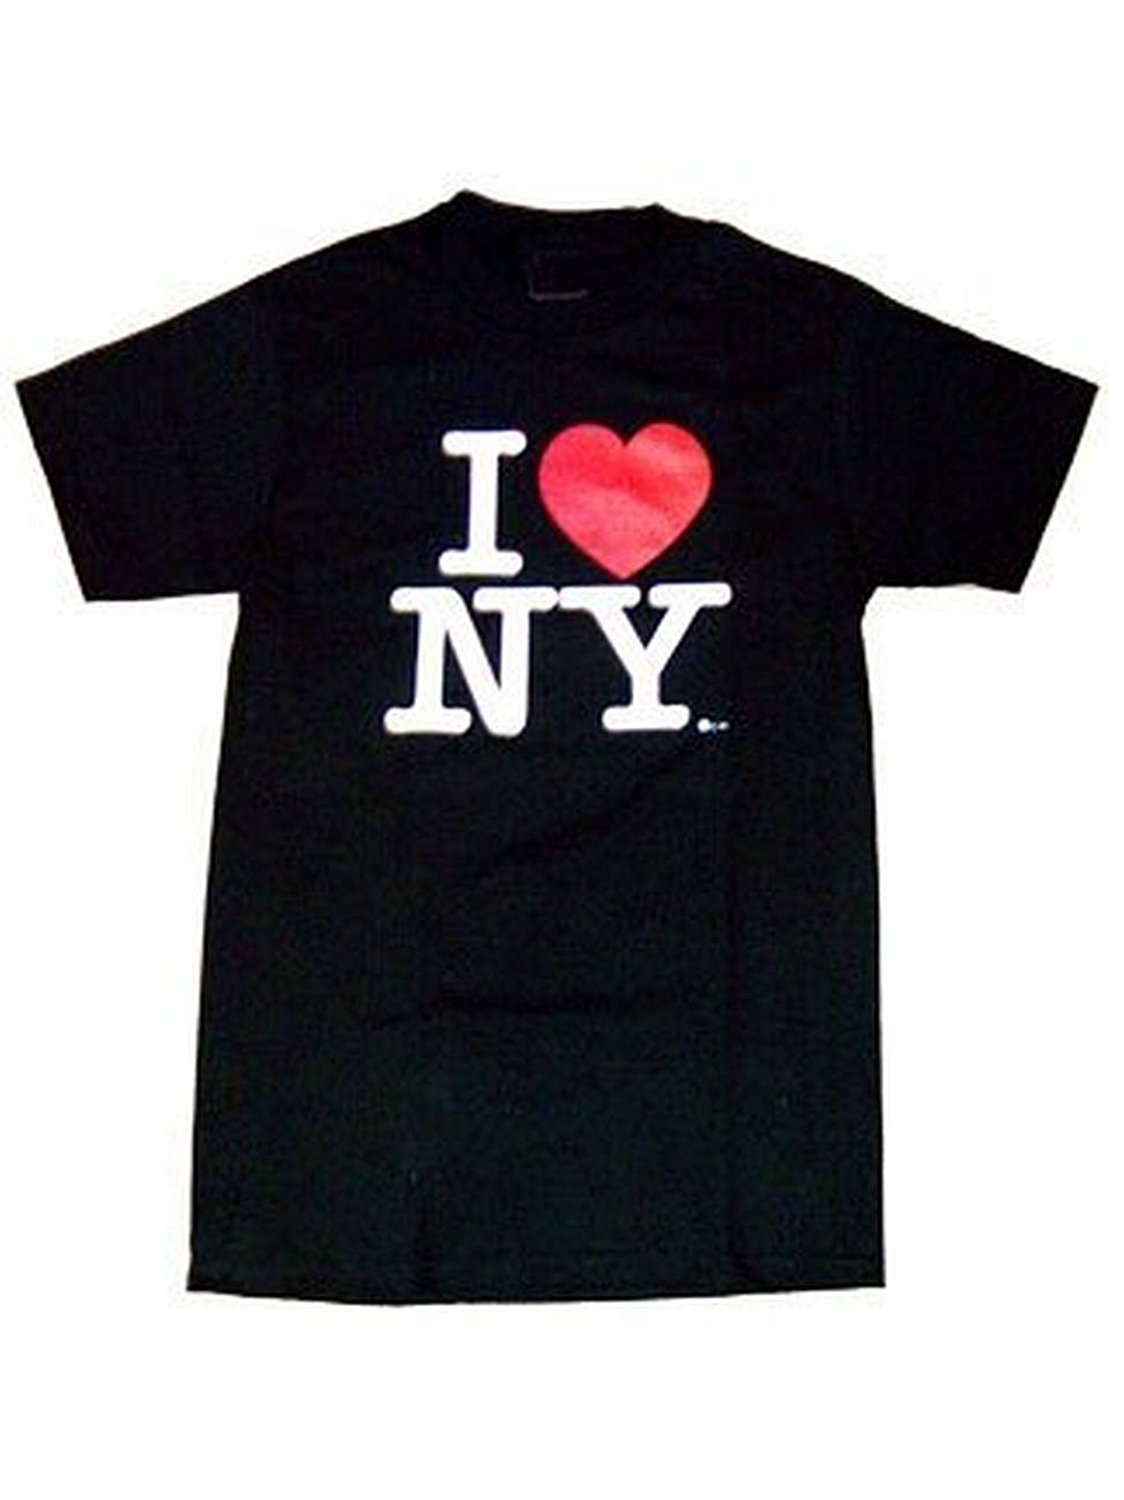 aade421b I Love NY T-Shirt Black 100% Cotton Official Licensed New York Tee NYC  Souvenir